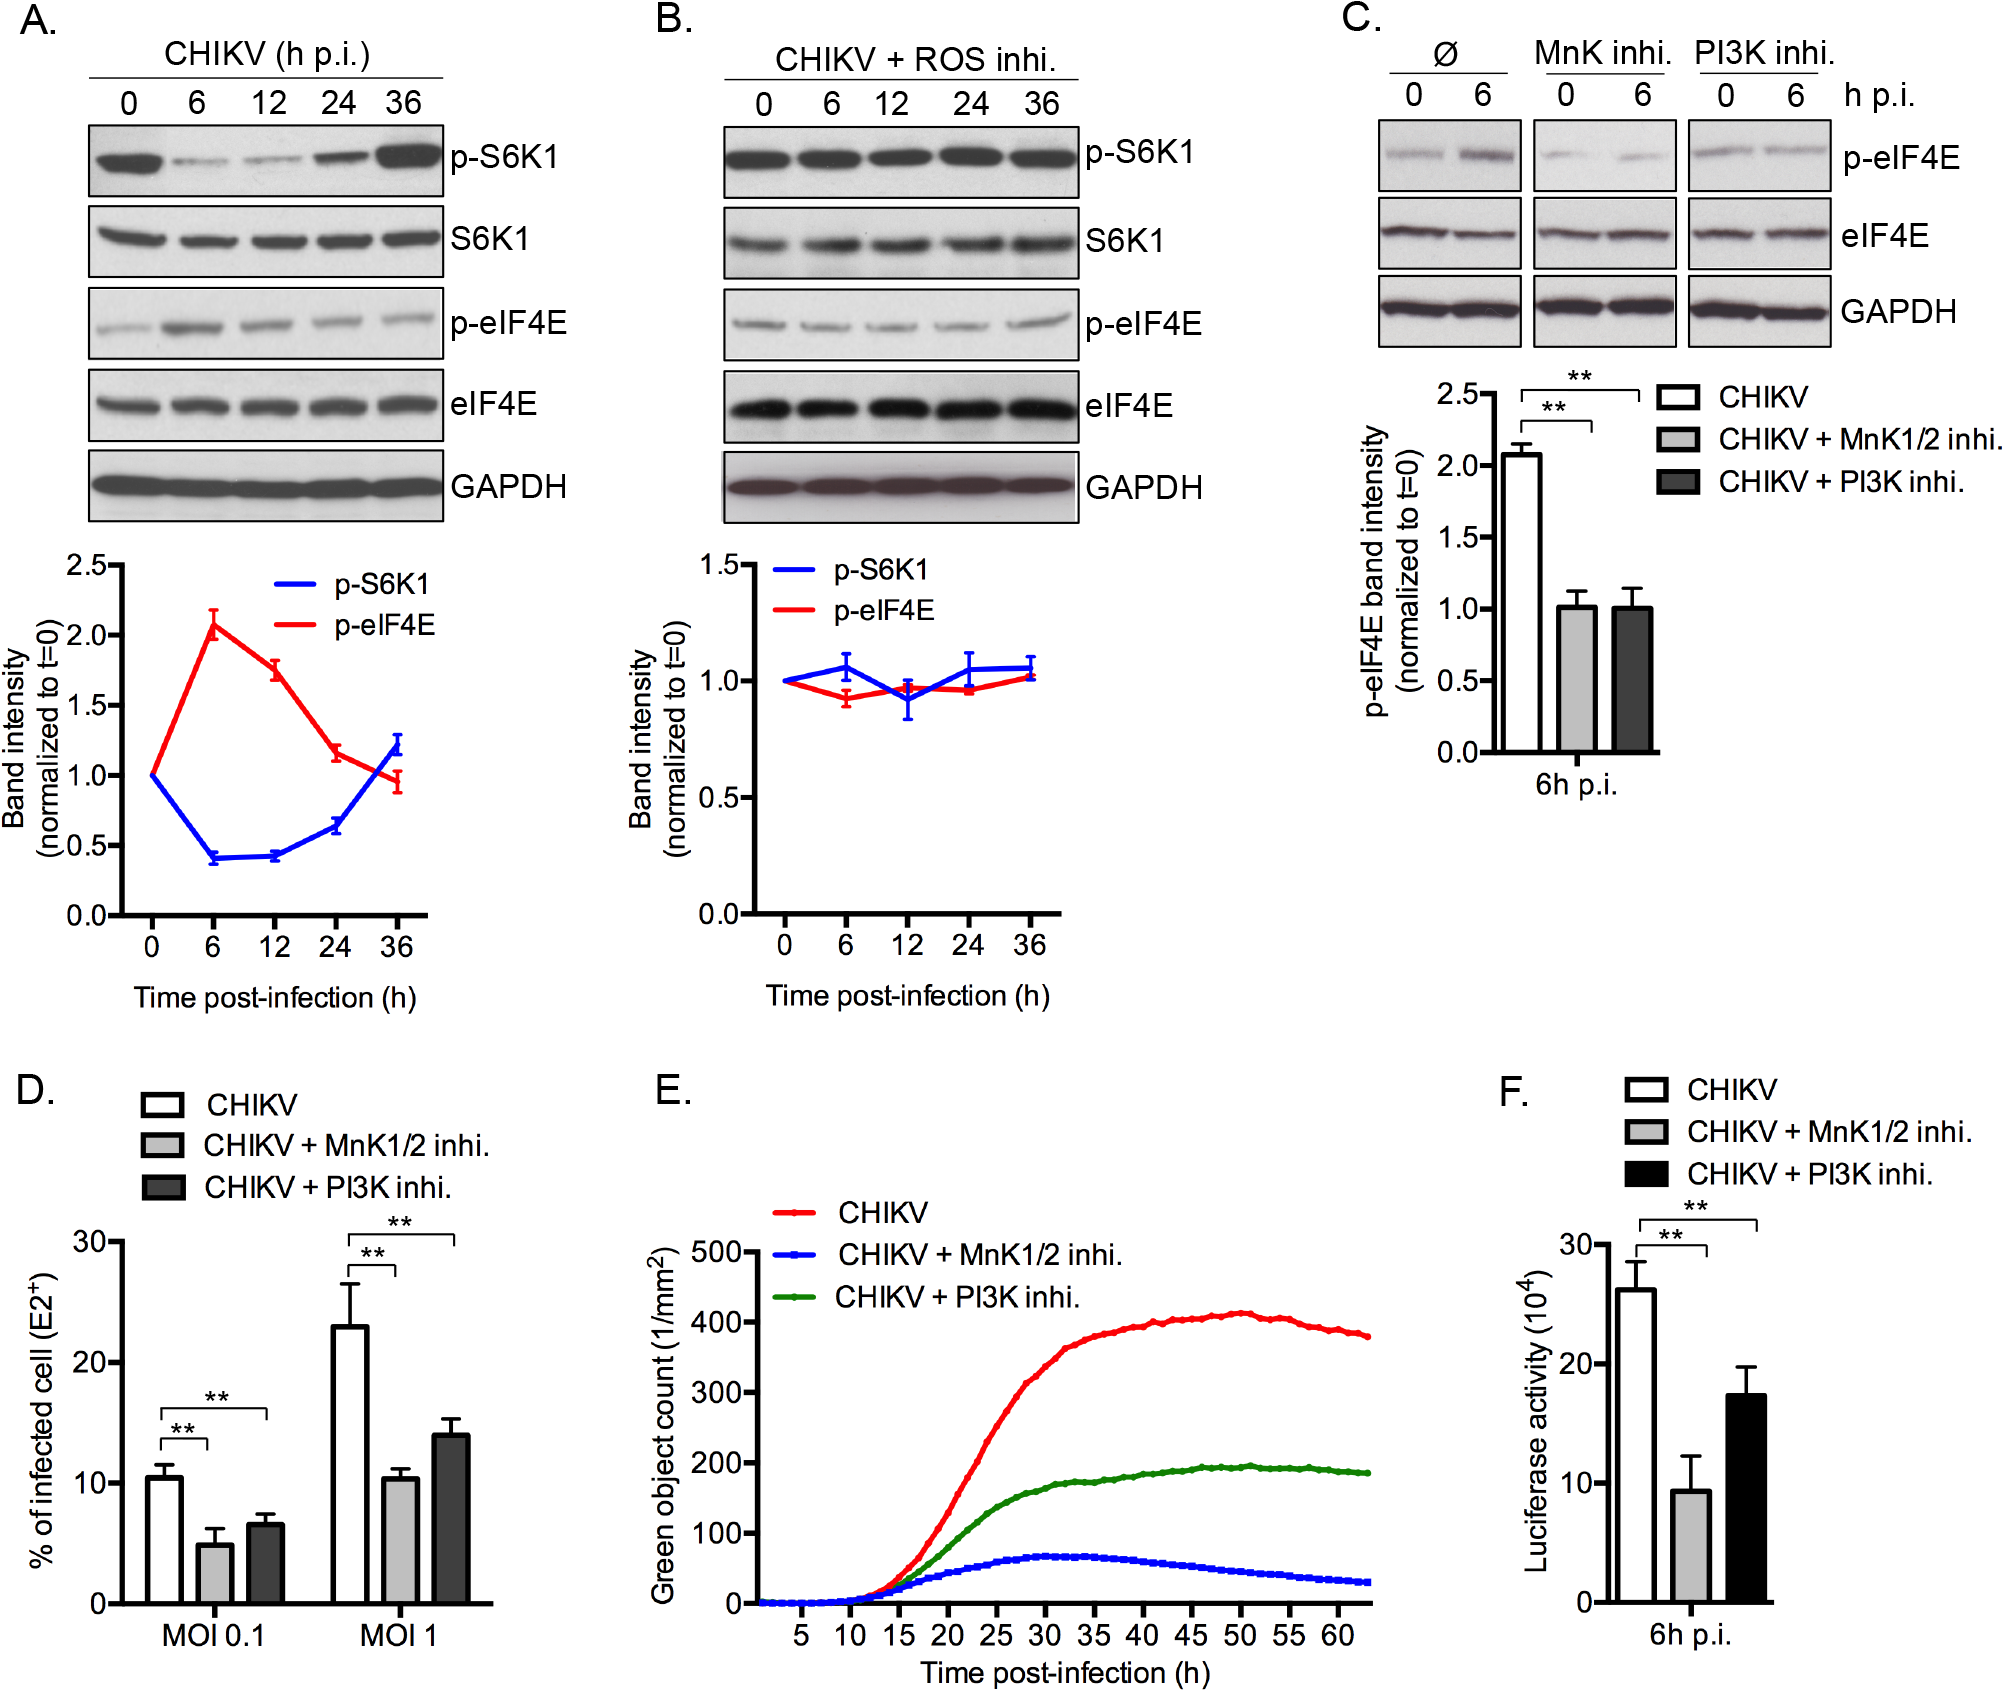 CHIKV-induced mTORC1 inhibition favors infection through the MnK/p-eIF4E pathway.